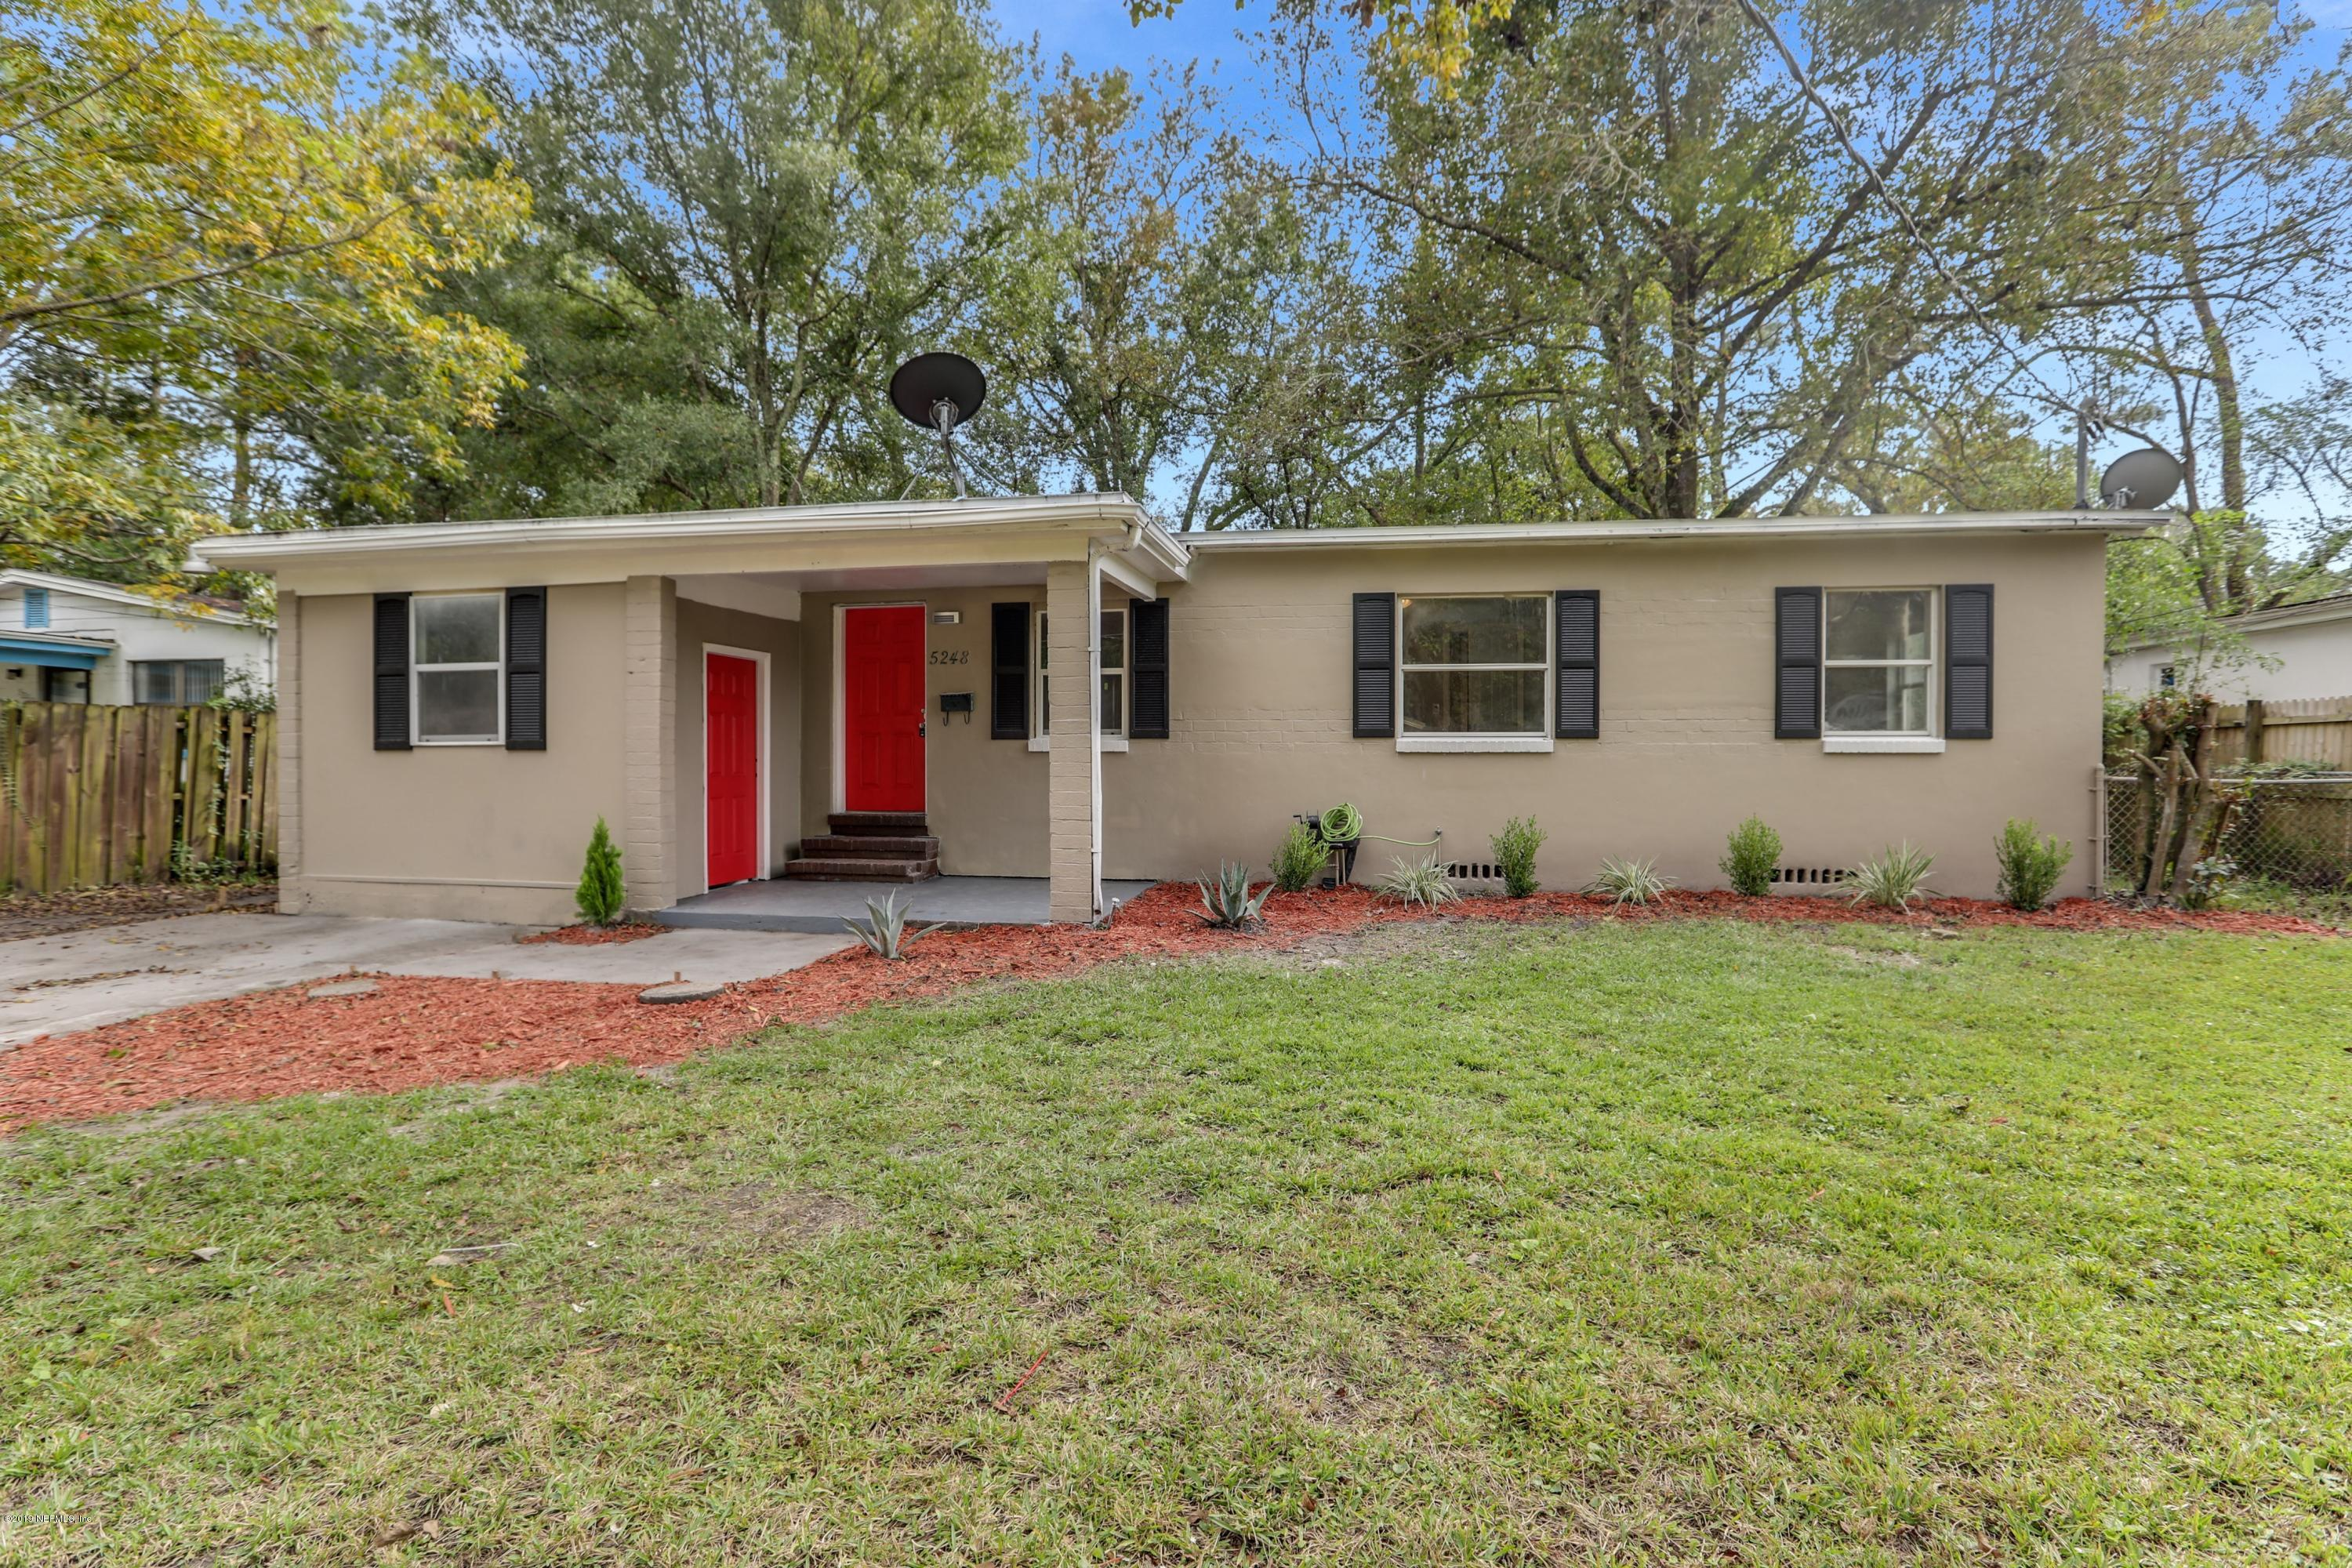 5248 PLYMOUTH, JACKSONVILLE, FLORIDA 32205, 4 Bedrooms Bedrooms, ,2 BathroomsBathrooms,Residential - single family,For sale,PLYMOUTH,979685